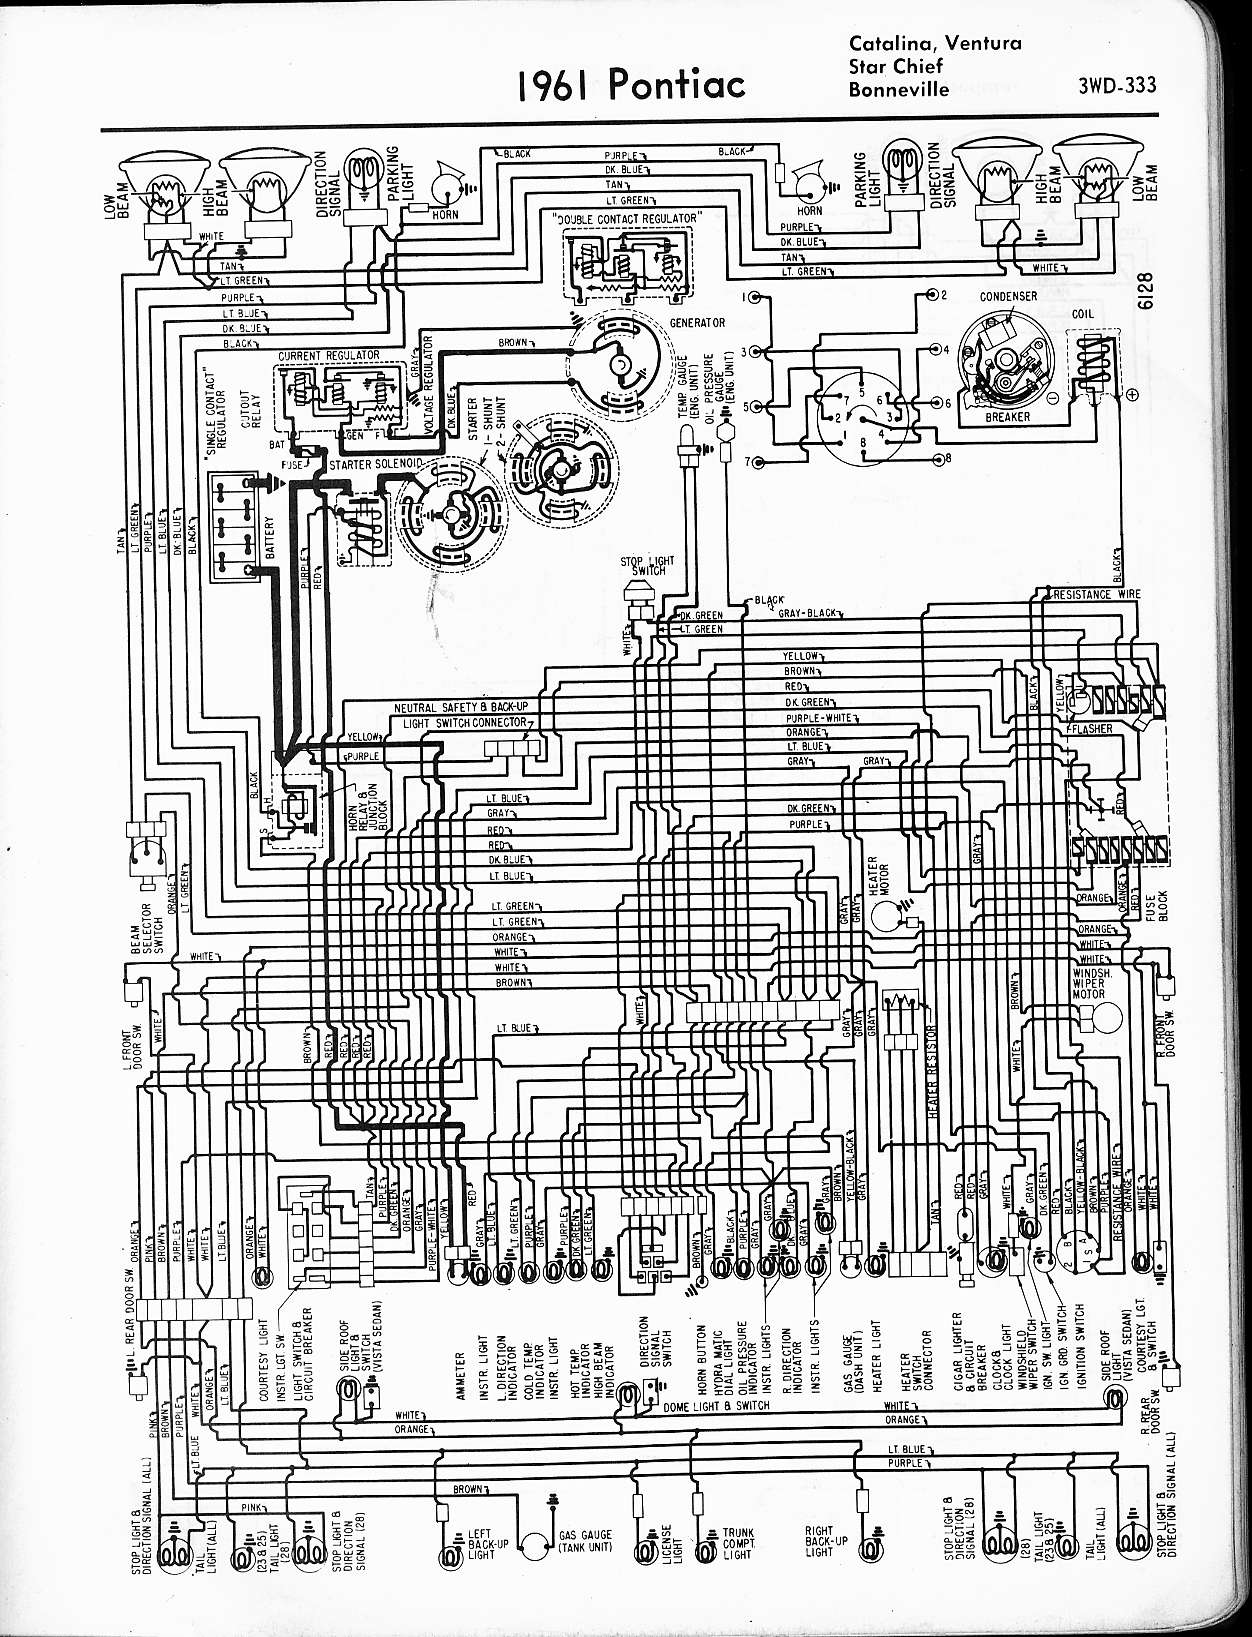 1962 Oldsmobile Wiring Diagram Library 2003 Alero Stereo Free Picture 1961 Catalina Star Chief Ventura Bonneville Tempest